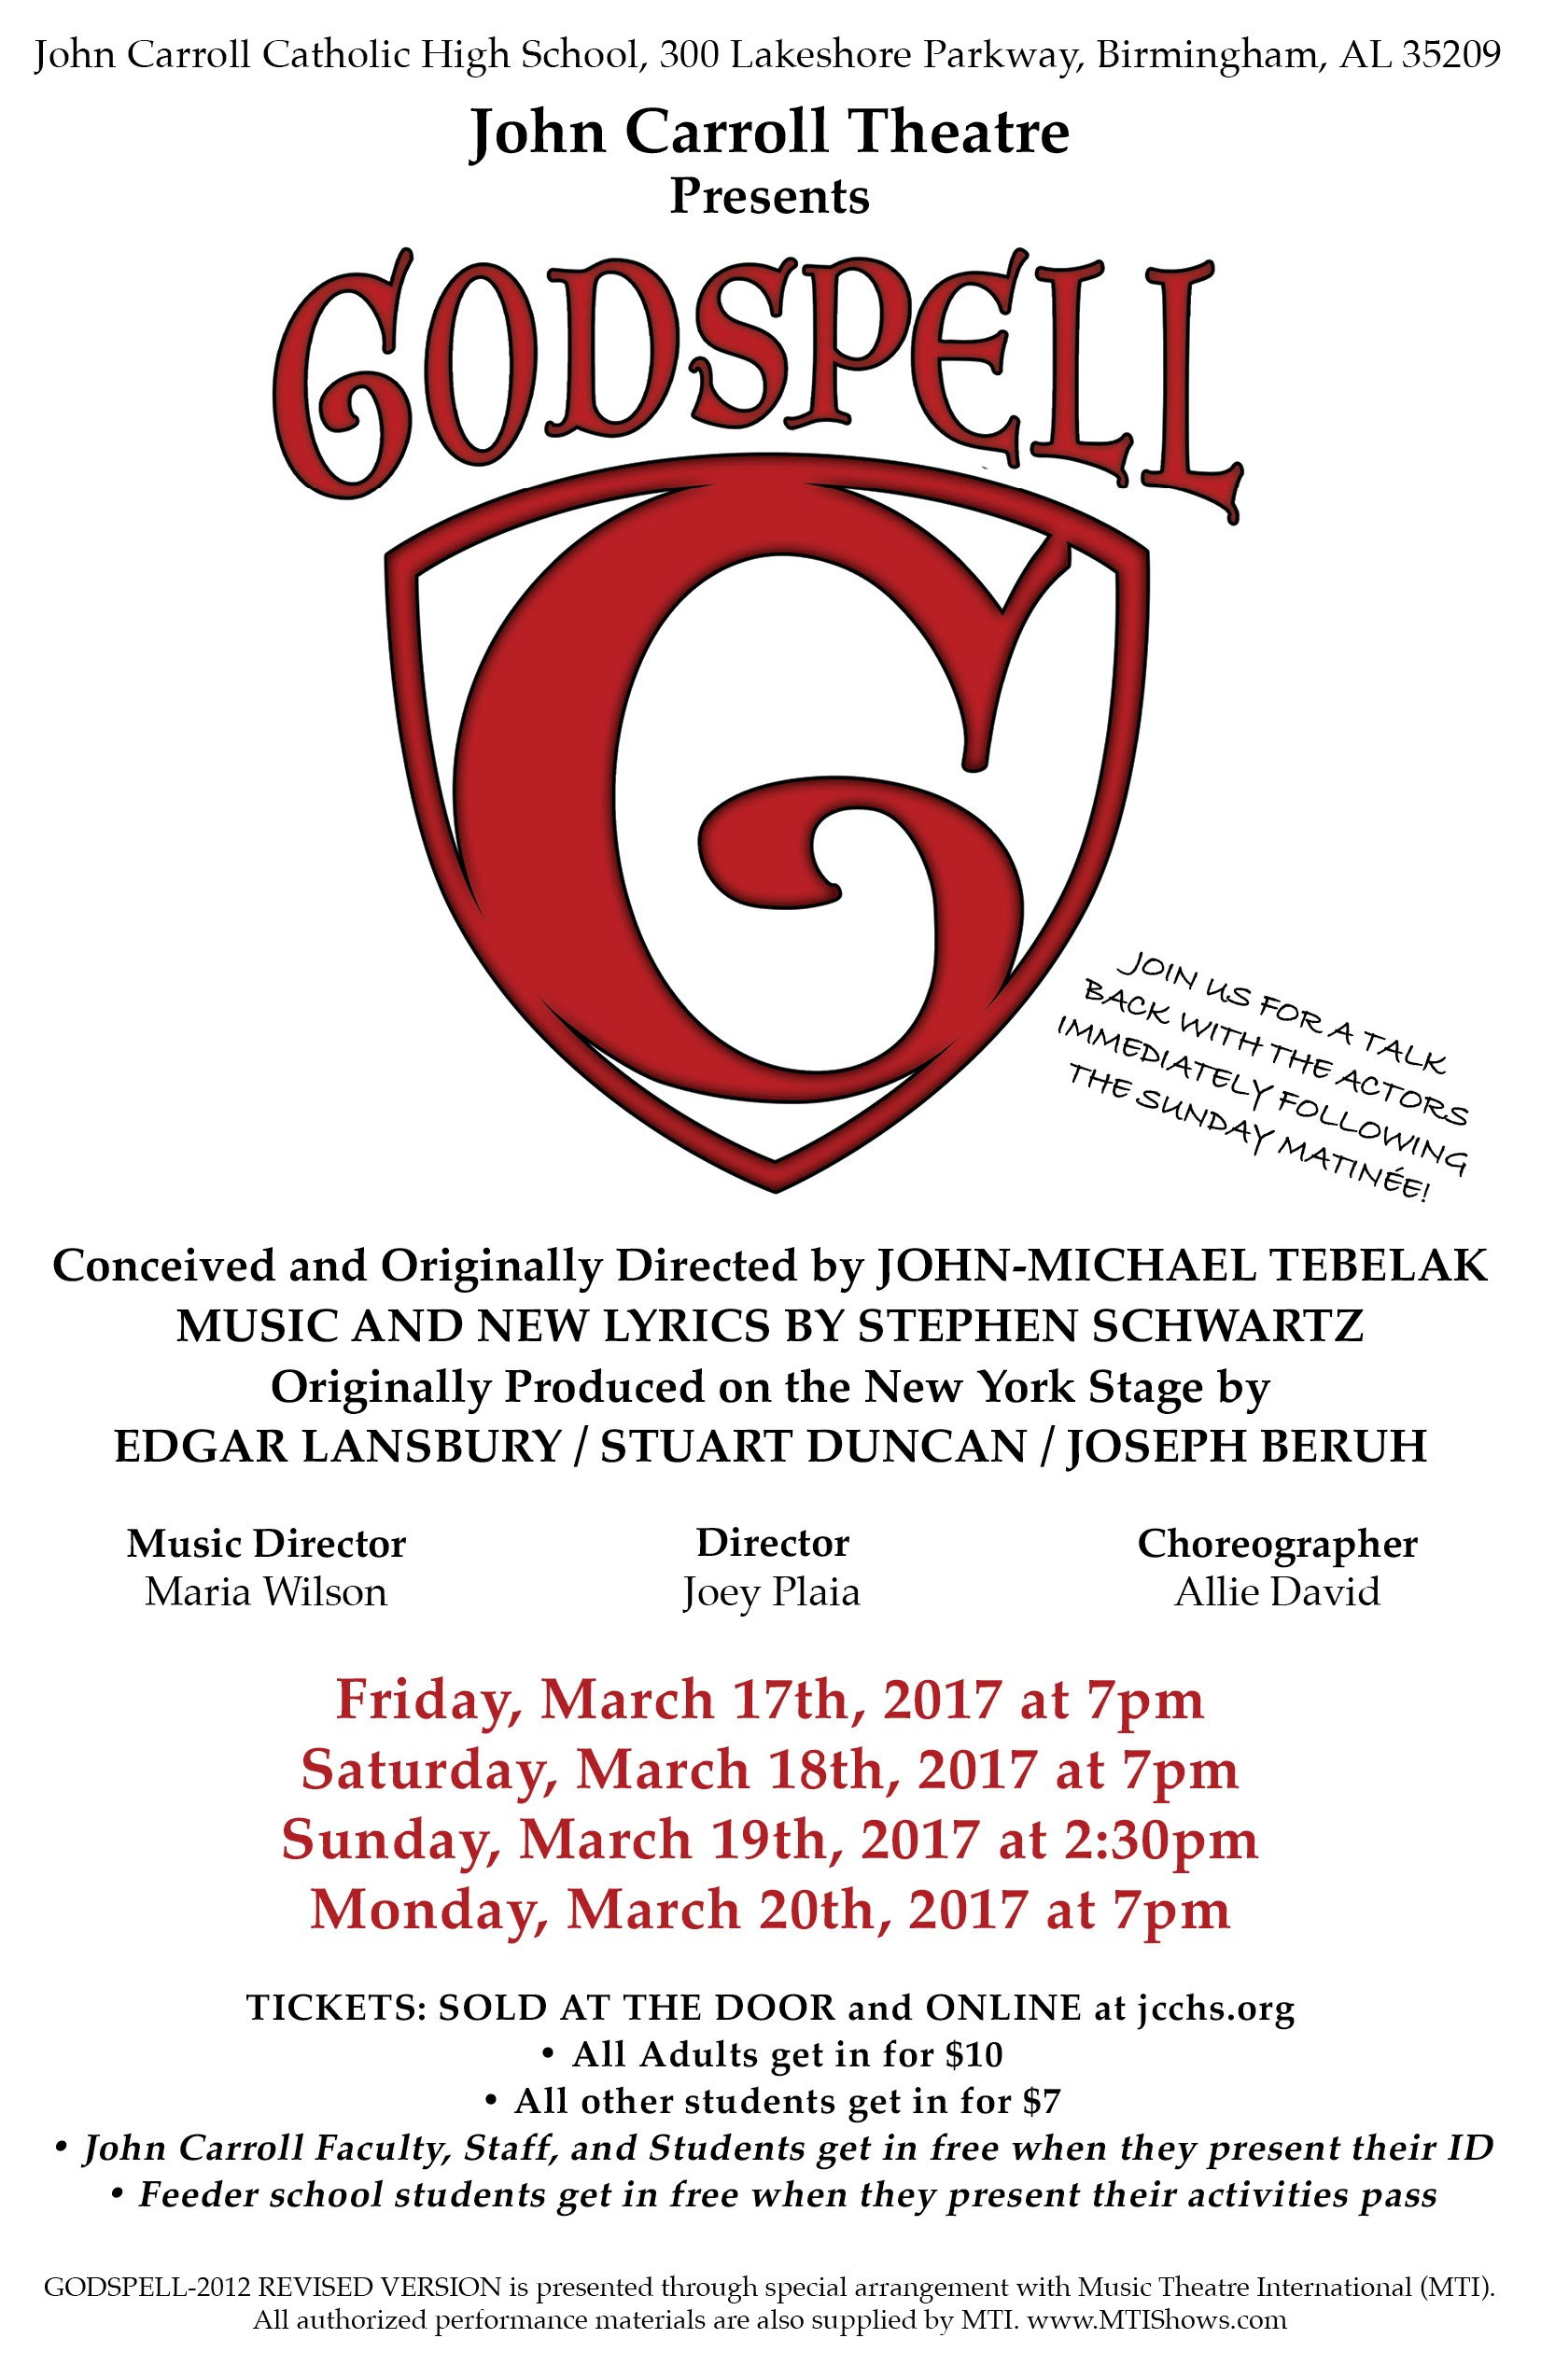 Godspell, at John Carroll Theatre 2017